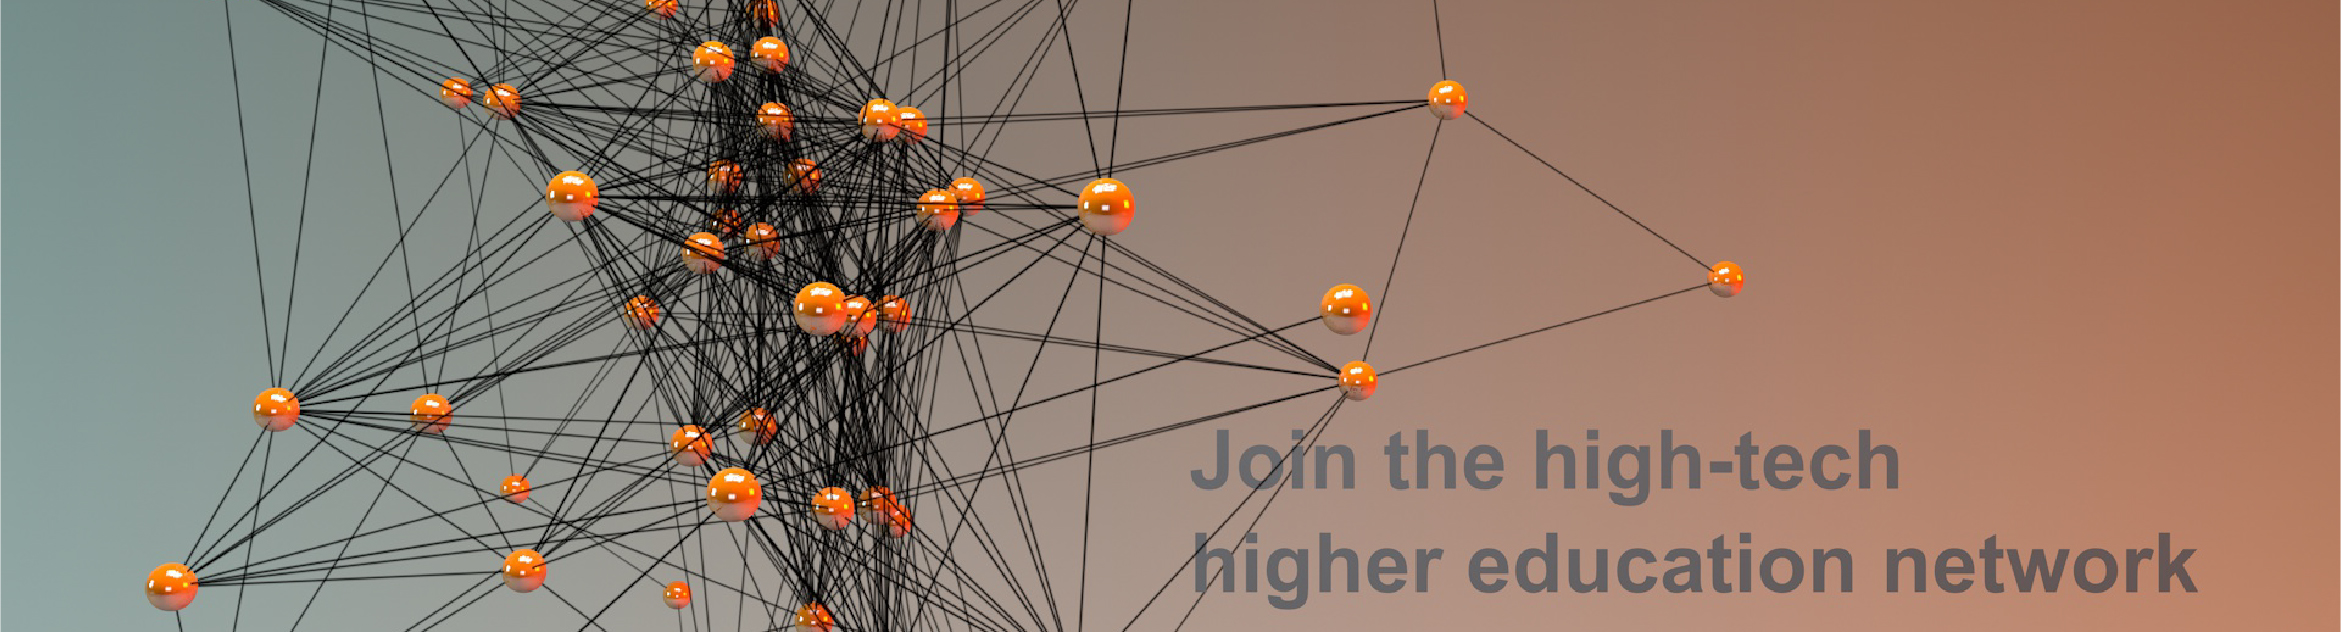 Join the R&W high tech higher education network